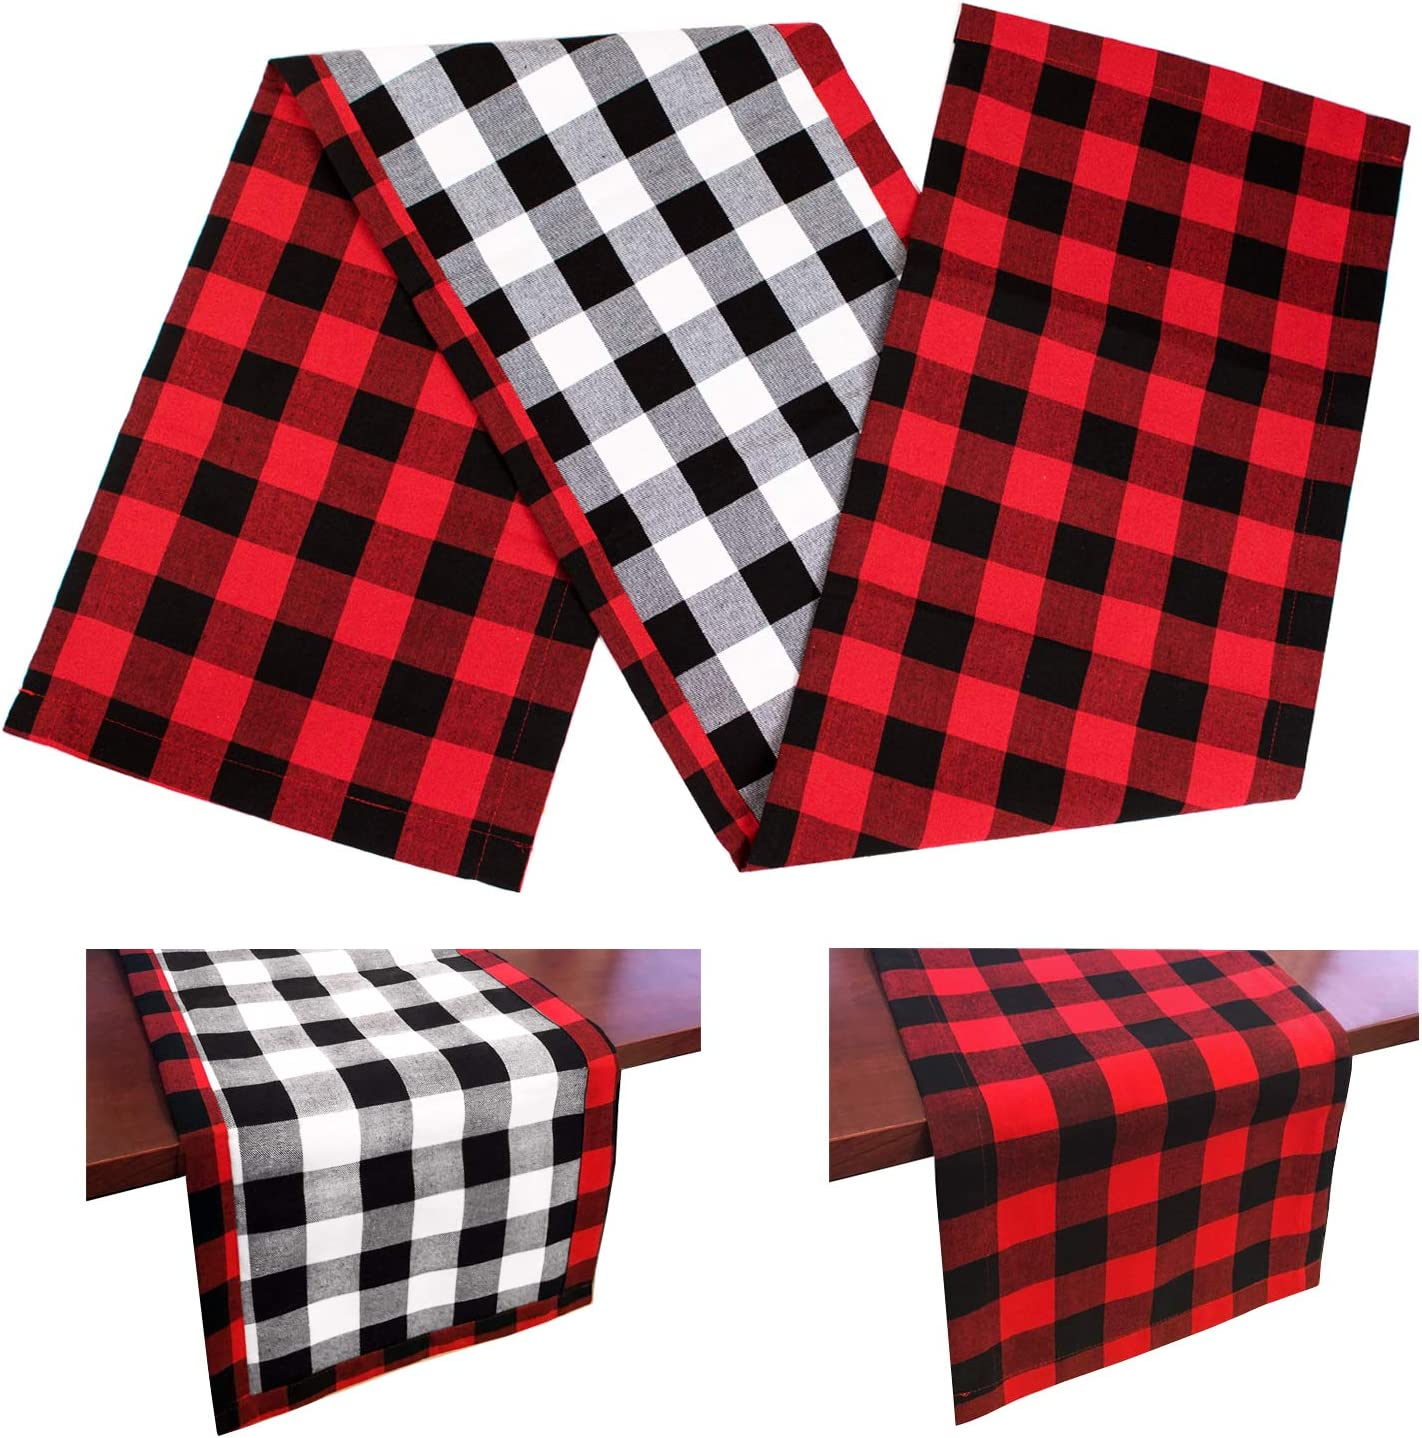 DAPUTOU Christmas Table Inventory cleanup selling sale Runner Red and Check Buffalo Cash special price Black Plaid